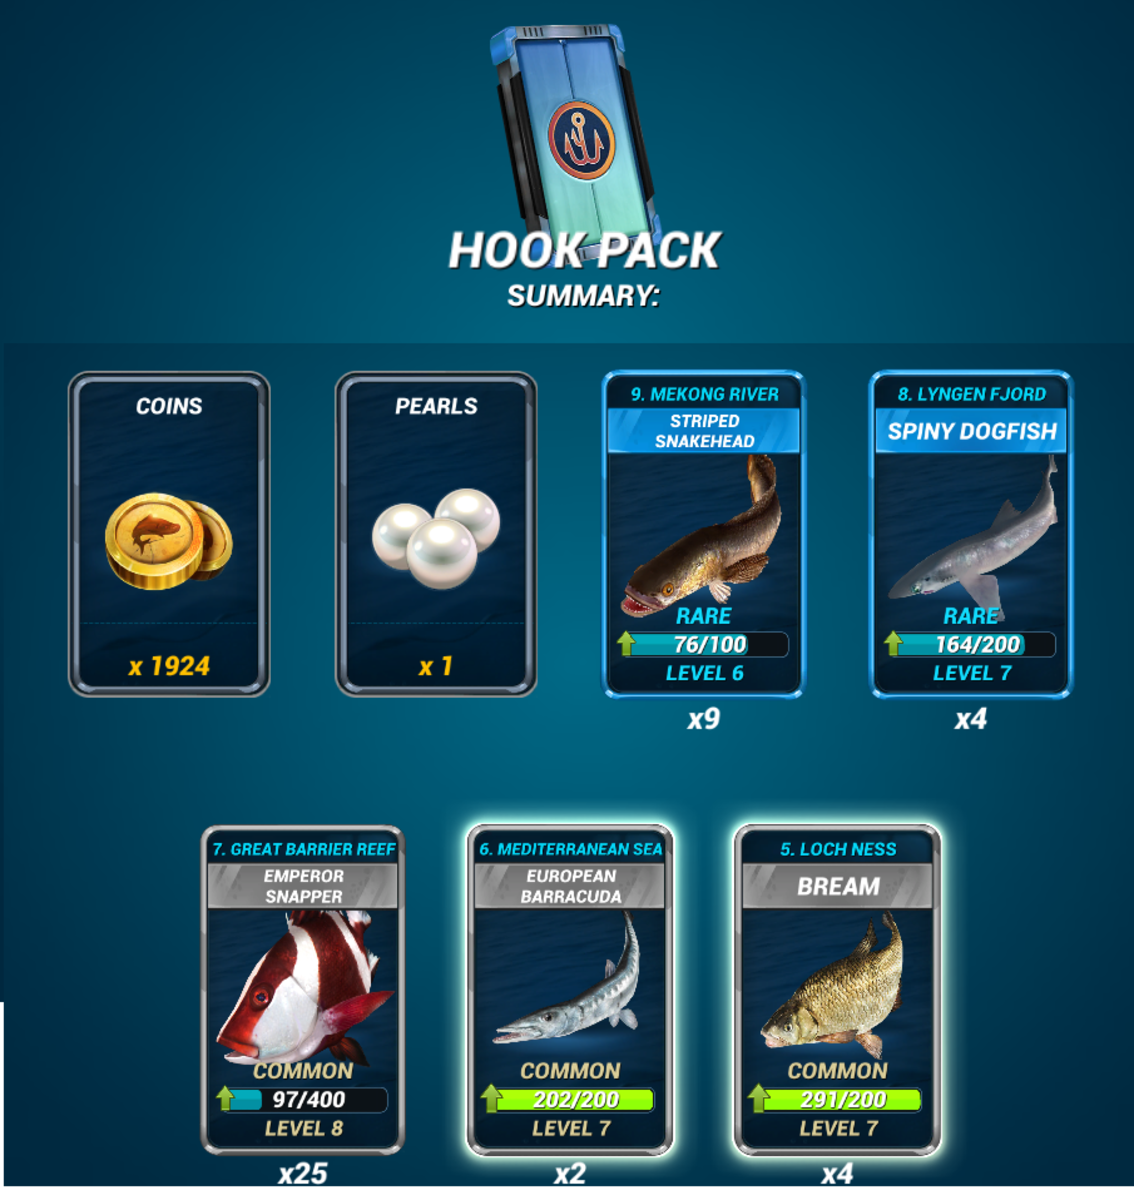 Example Daily Hook Pack Rewards